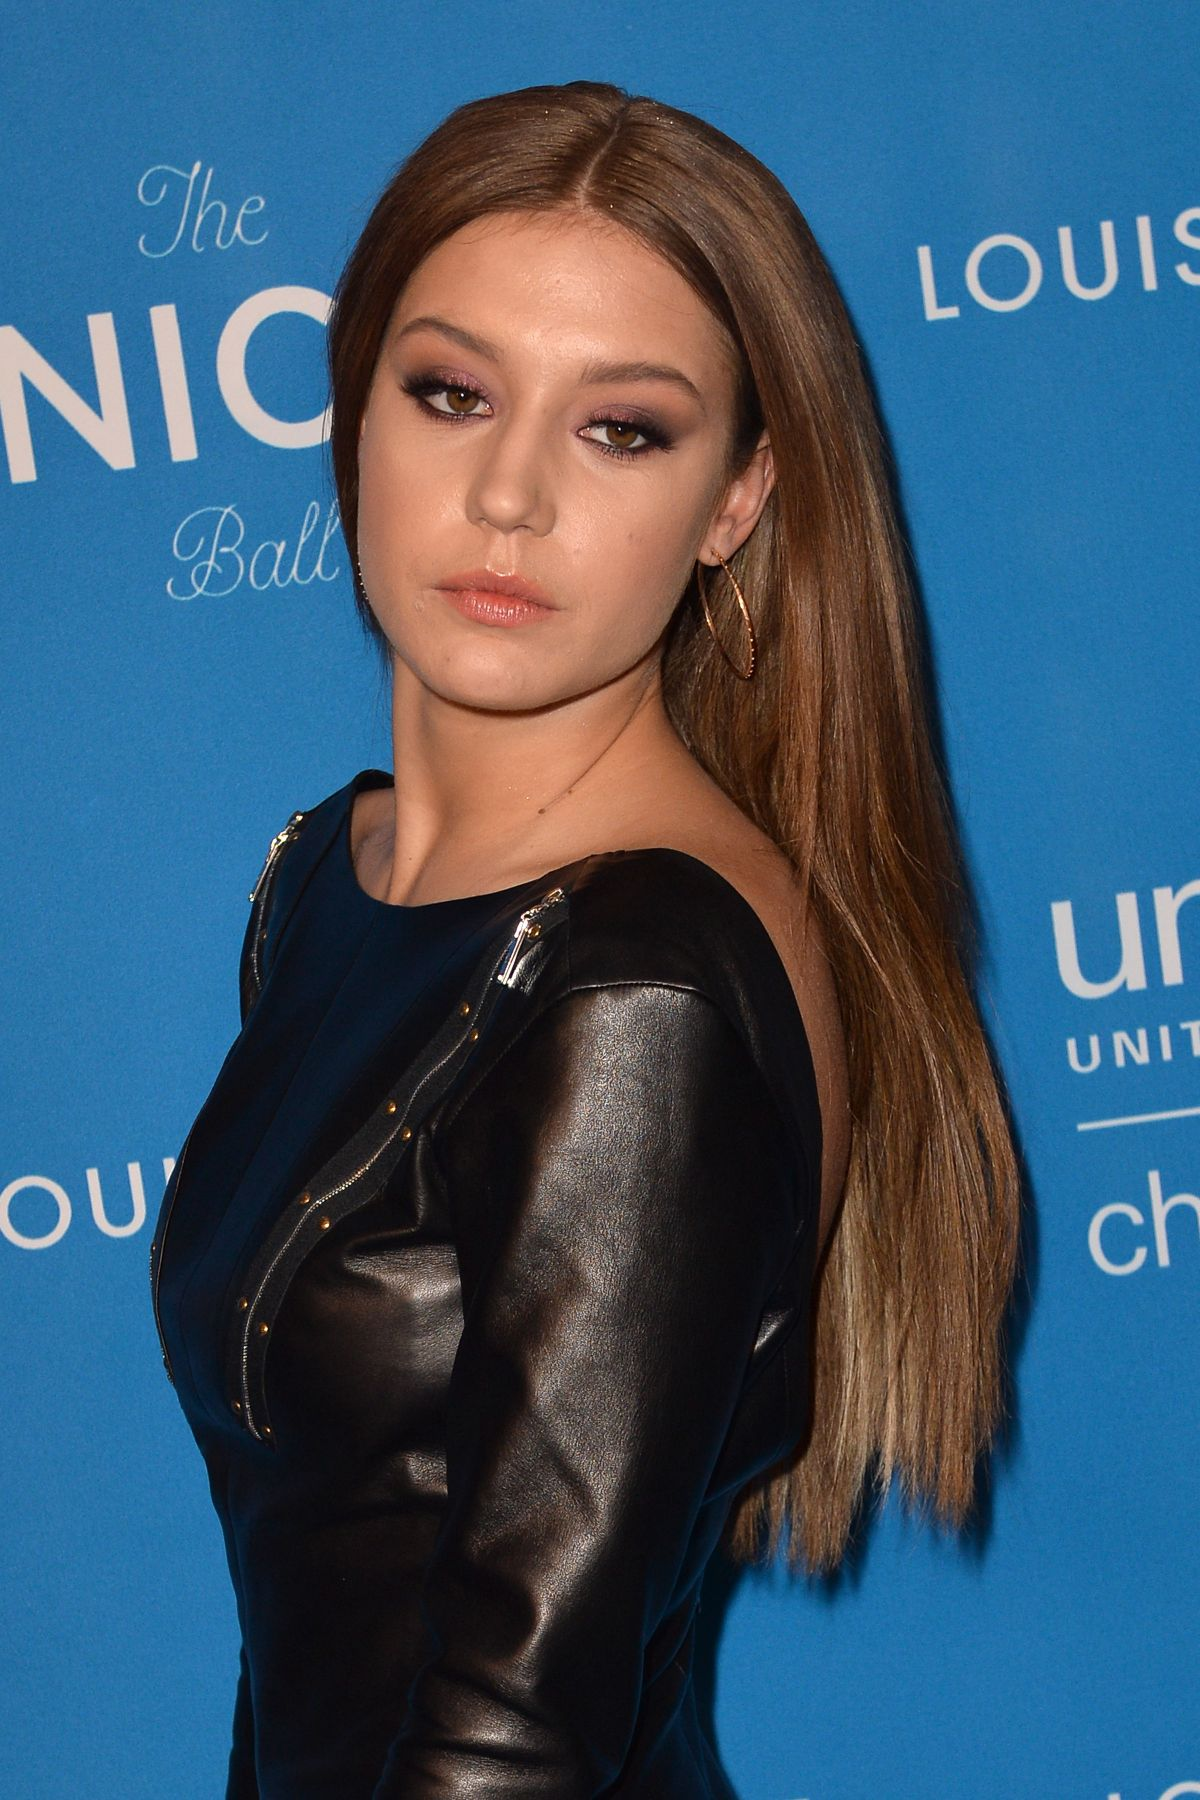 Adèle Exarchopoulos At The Sixth Biennial Unicef Ball In Beverly Hills